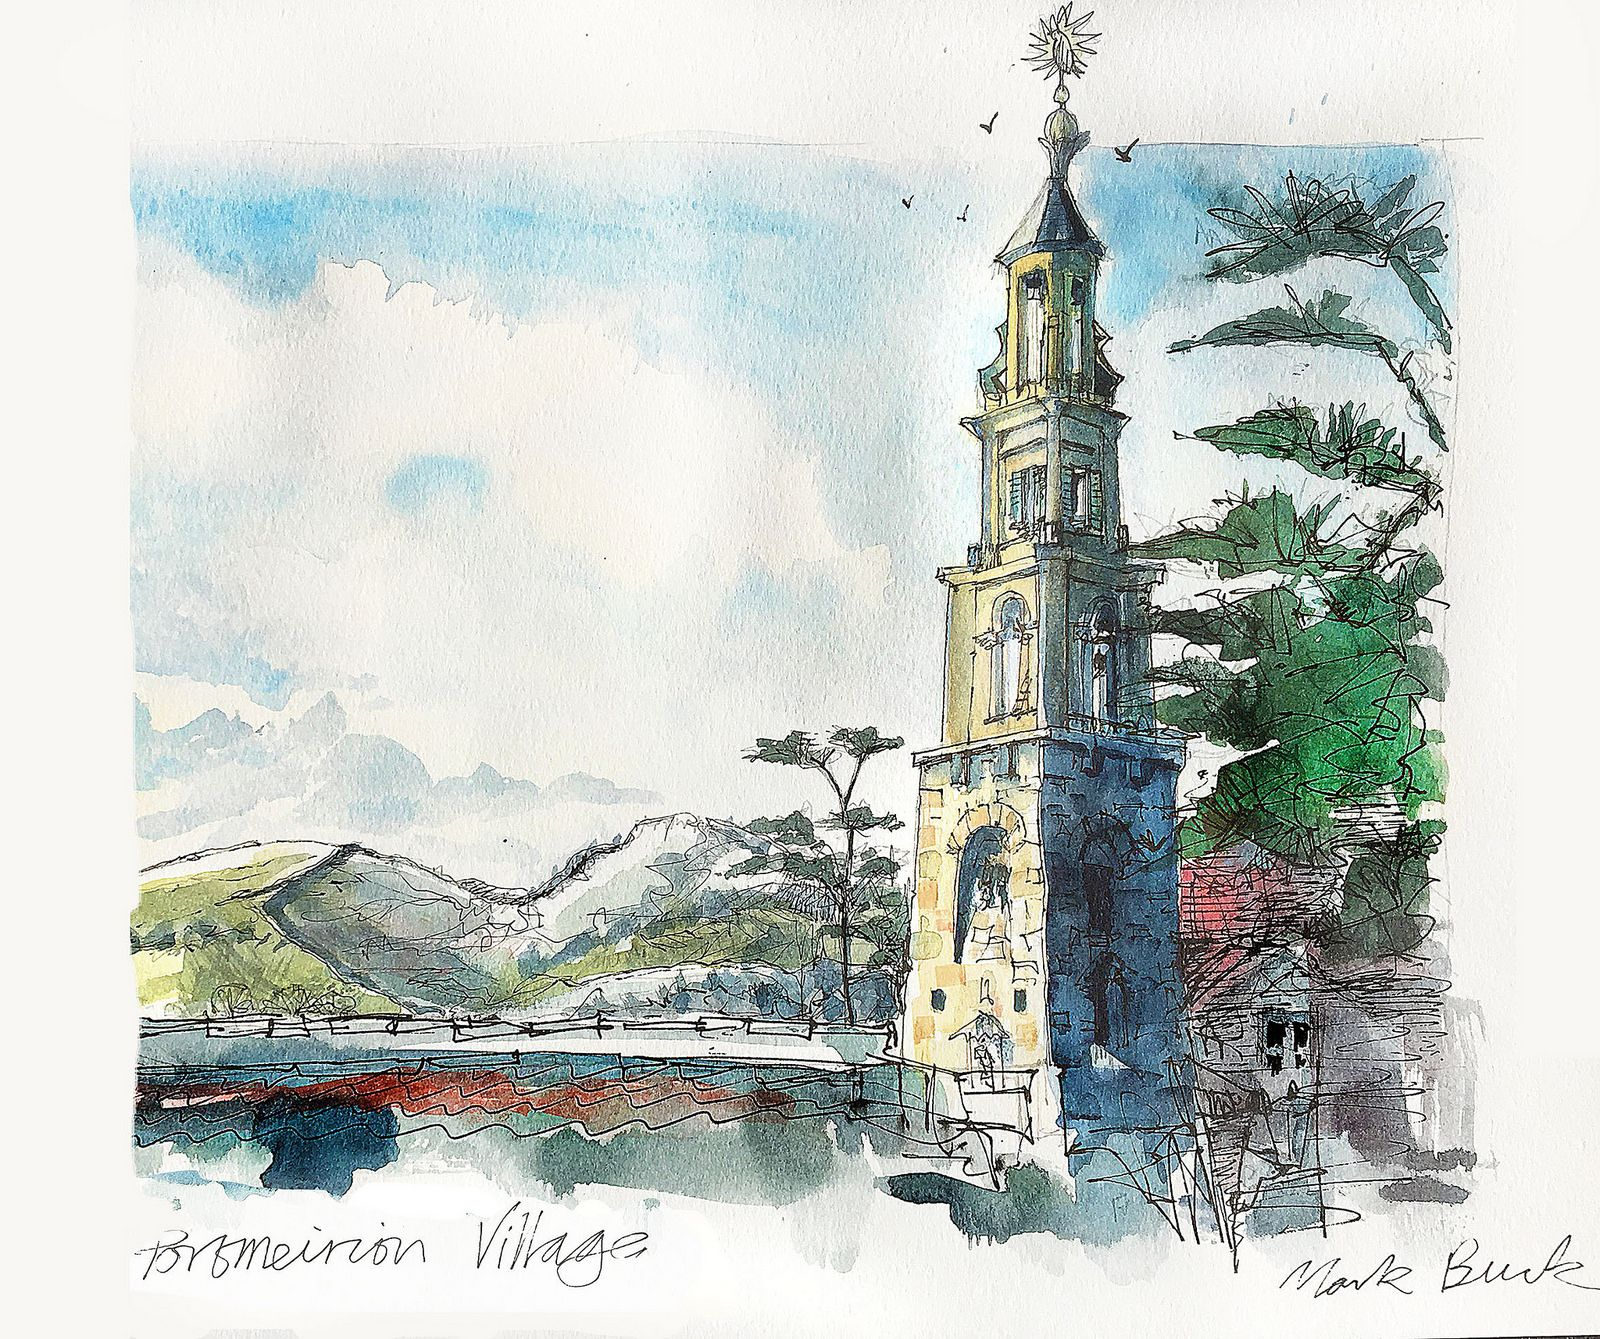 https://flic.kr/p/FY45aV | Portmeirion clock tower | A sketch from life of the clock tower in Portmeirion Village. Drawn on my lovely A3 Moleskine sketchbook.